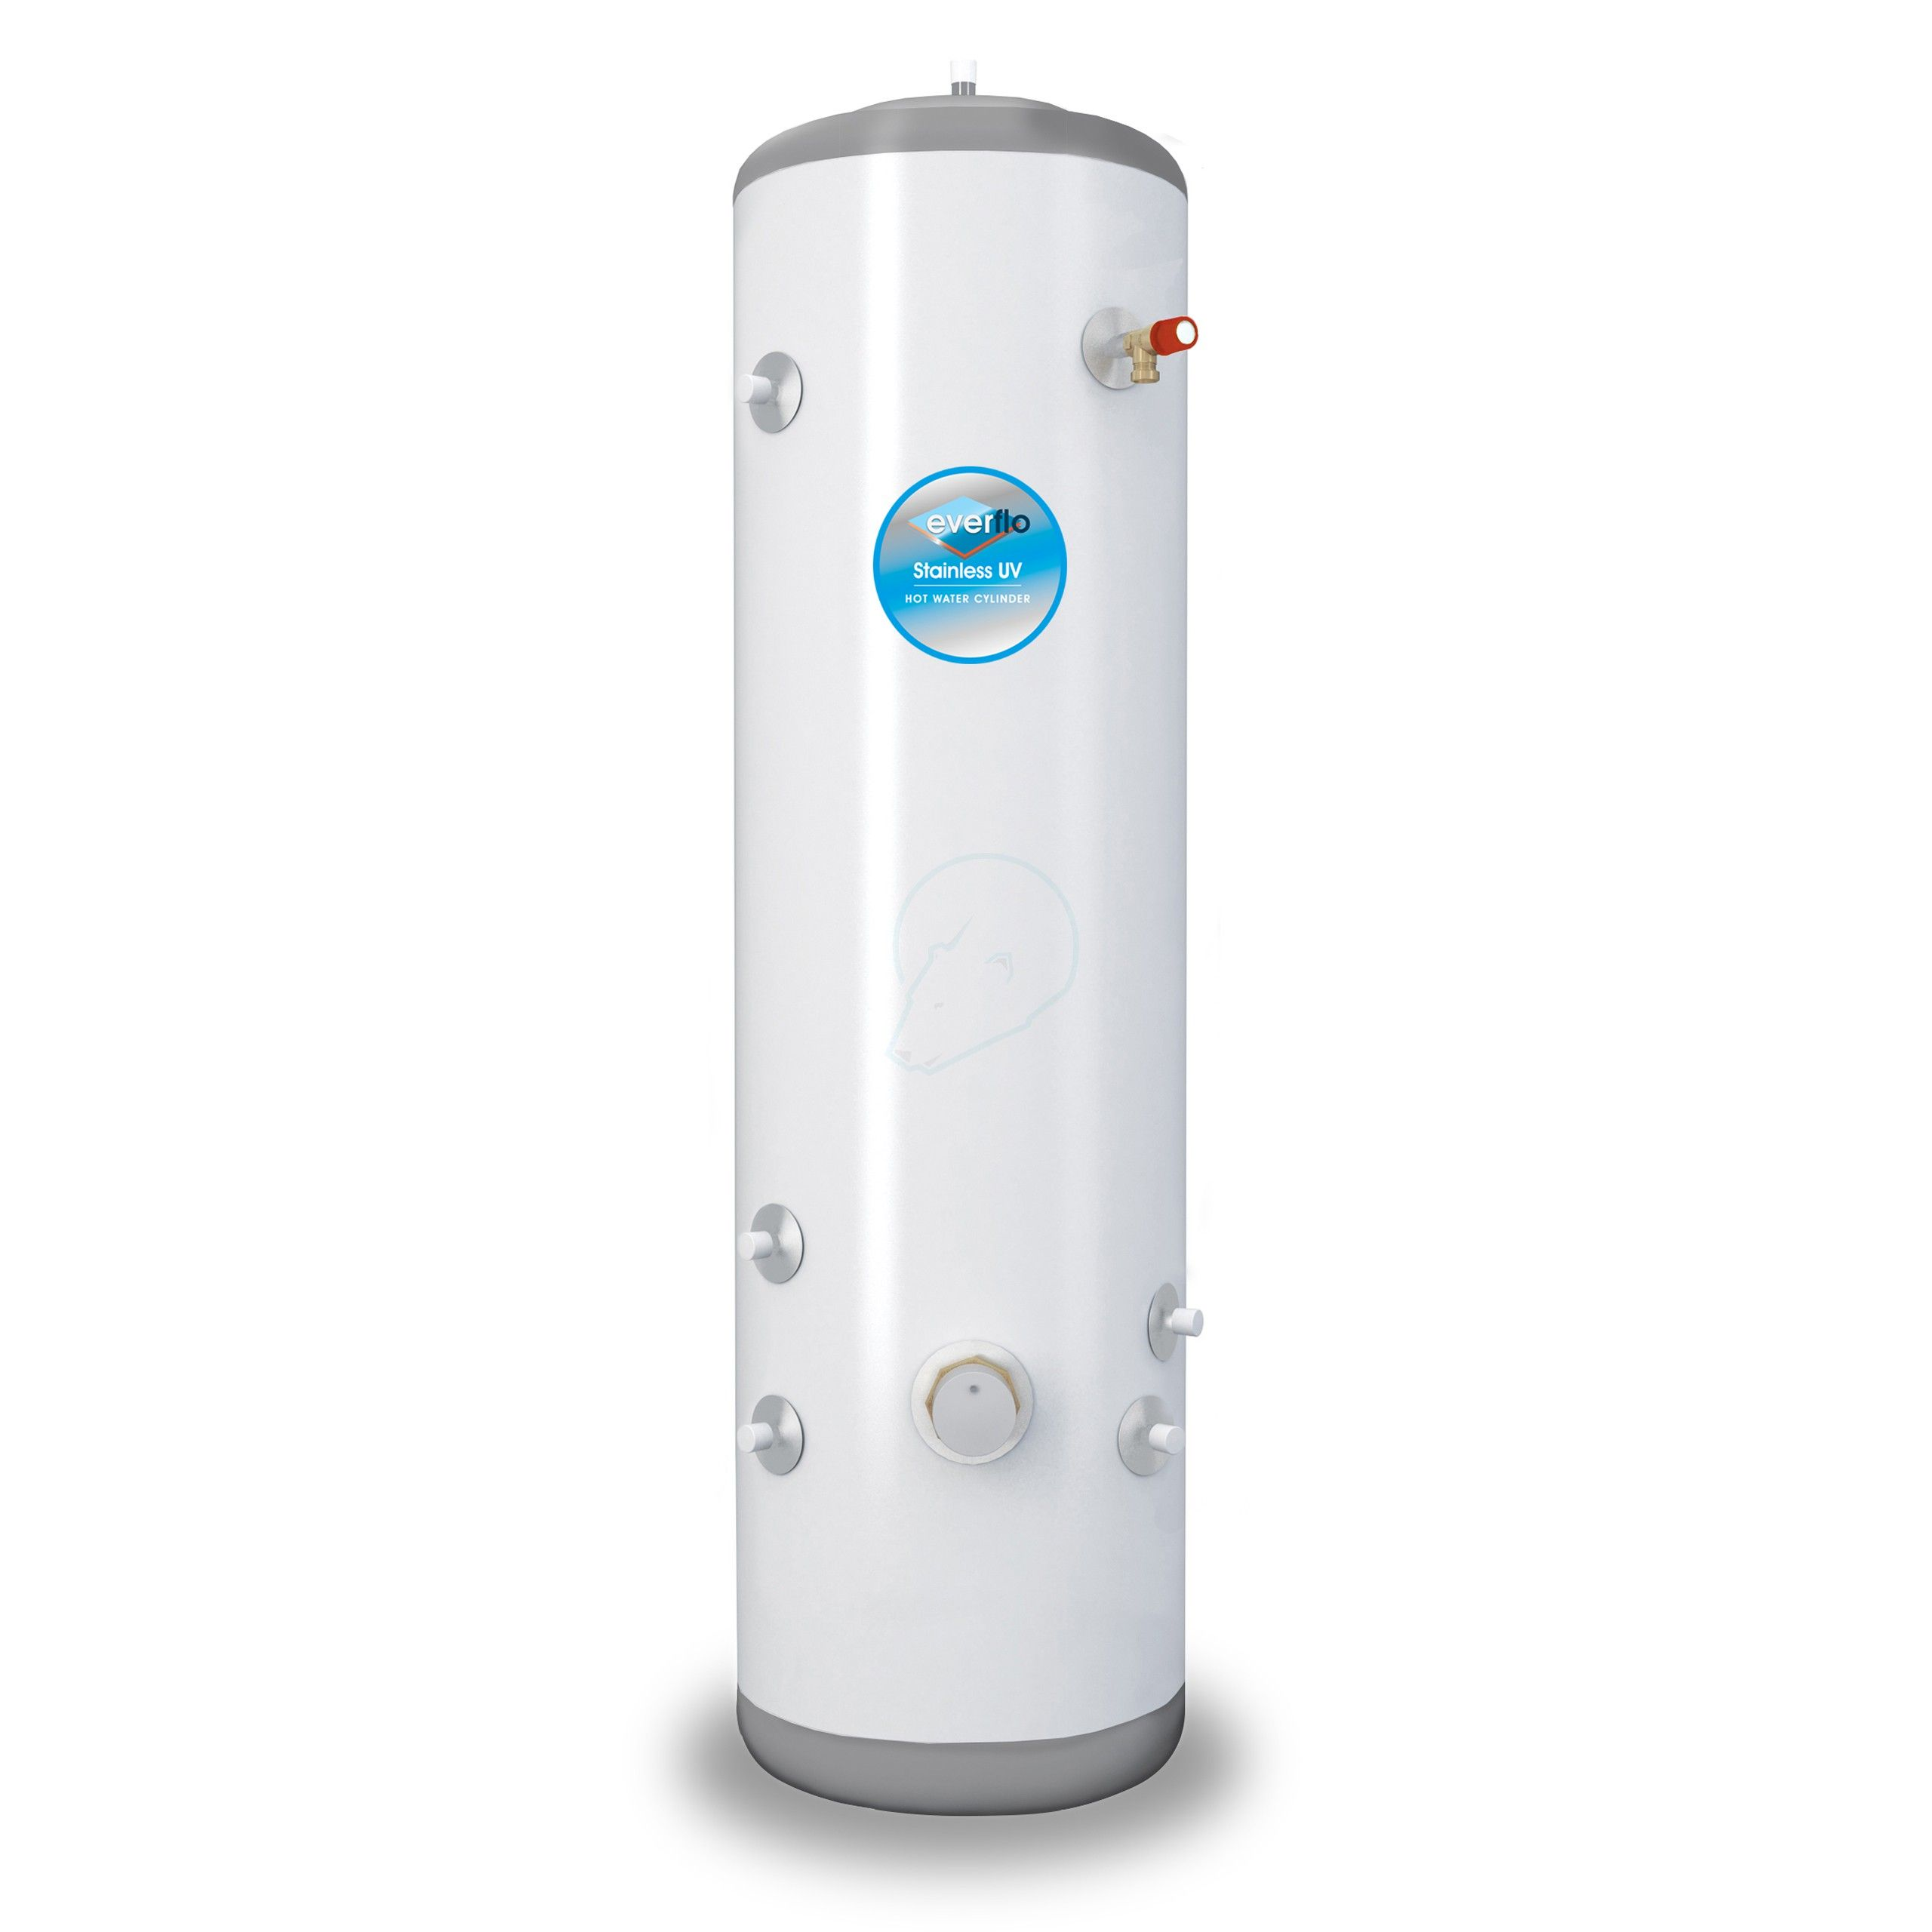 everflo Stainless 150L Slim-Fit Indirect Unvented Hot Water Storage ...